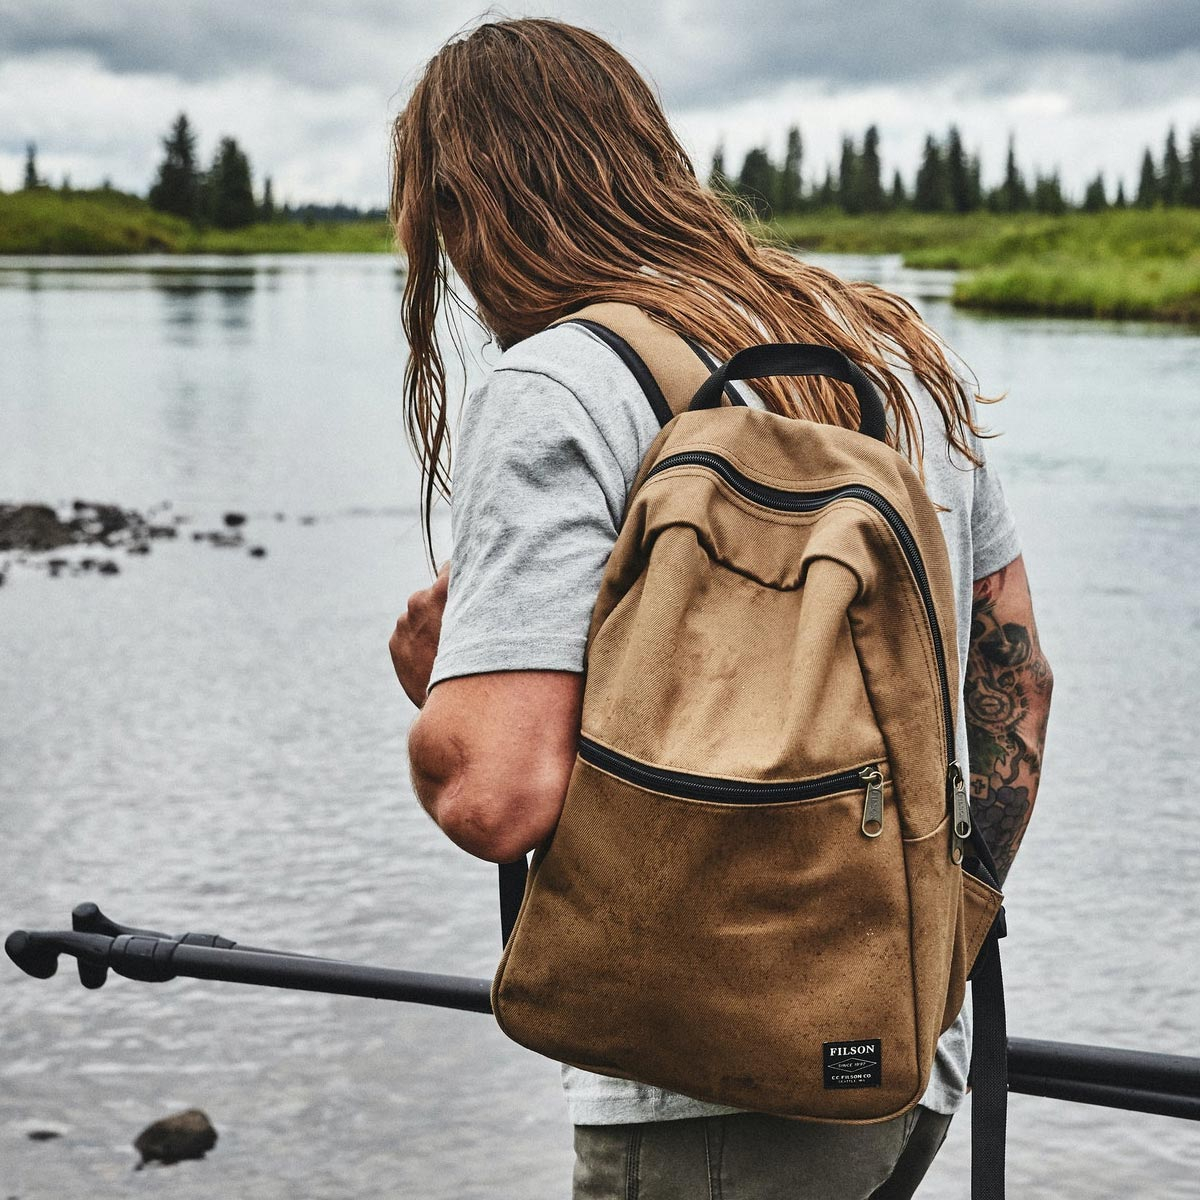 Filson Bandera Backpack 20092142-Sepias, is made with industrial-strength Rugged Twill for years of reliability